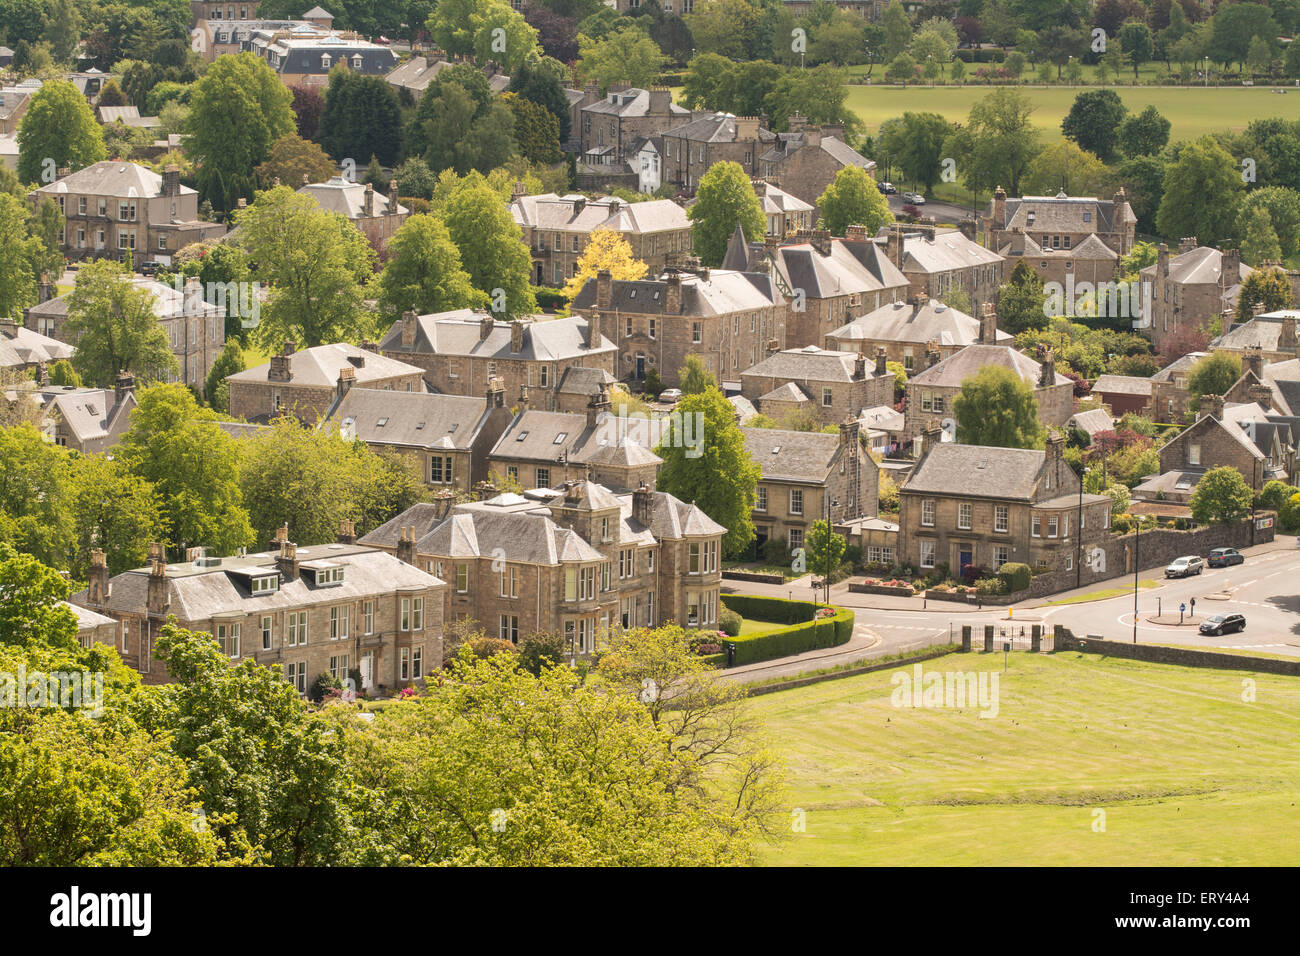 Victorian and Edwardian houses in the King's Park area of Stirling, Scotland, UK - Stock Image